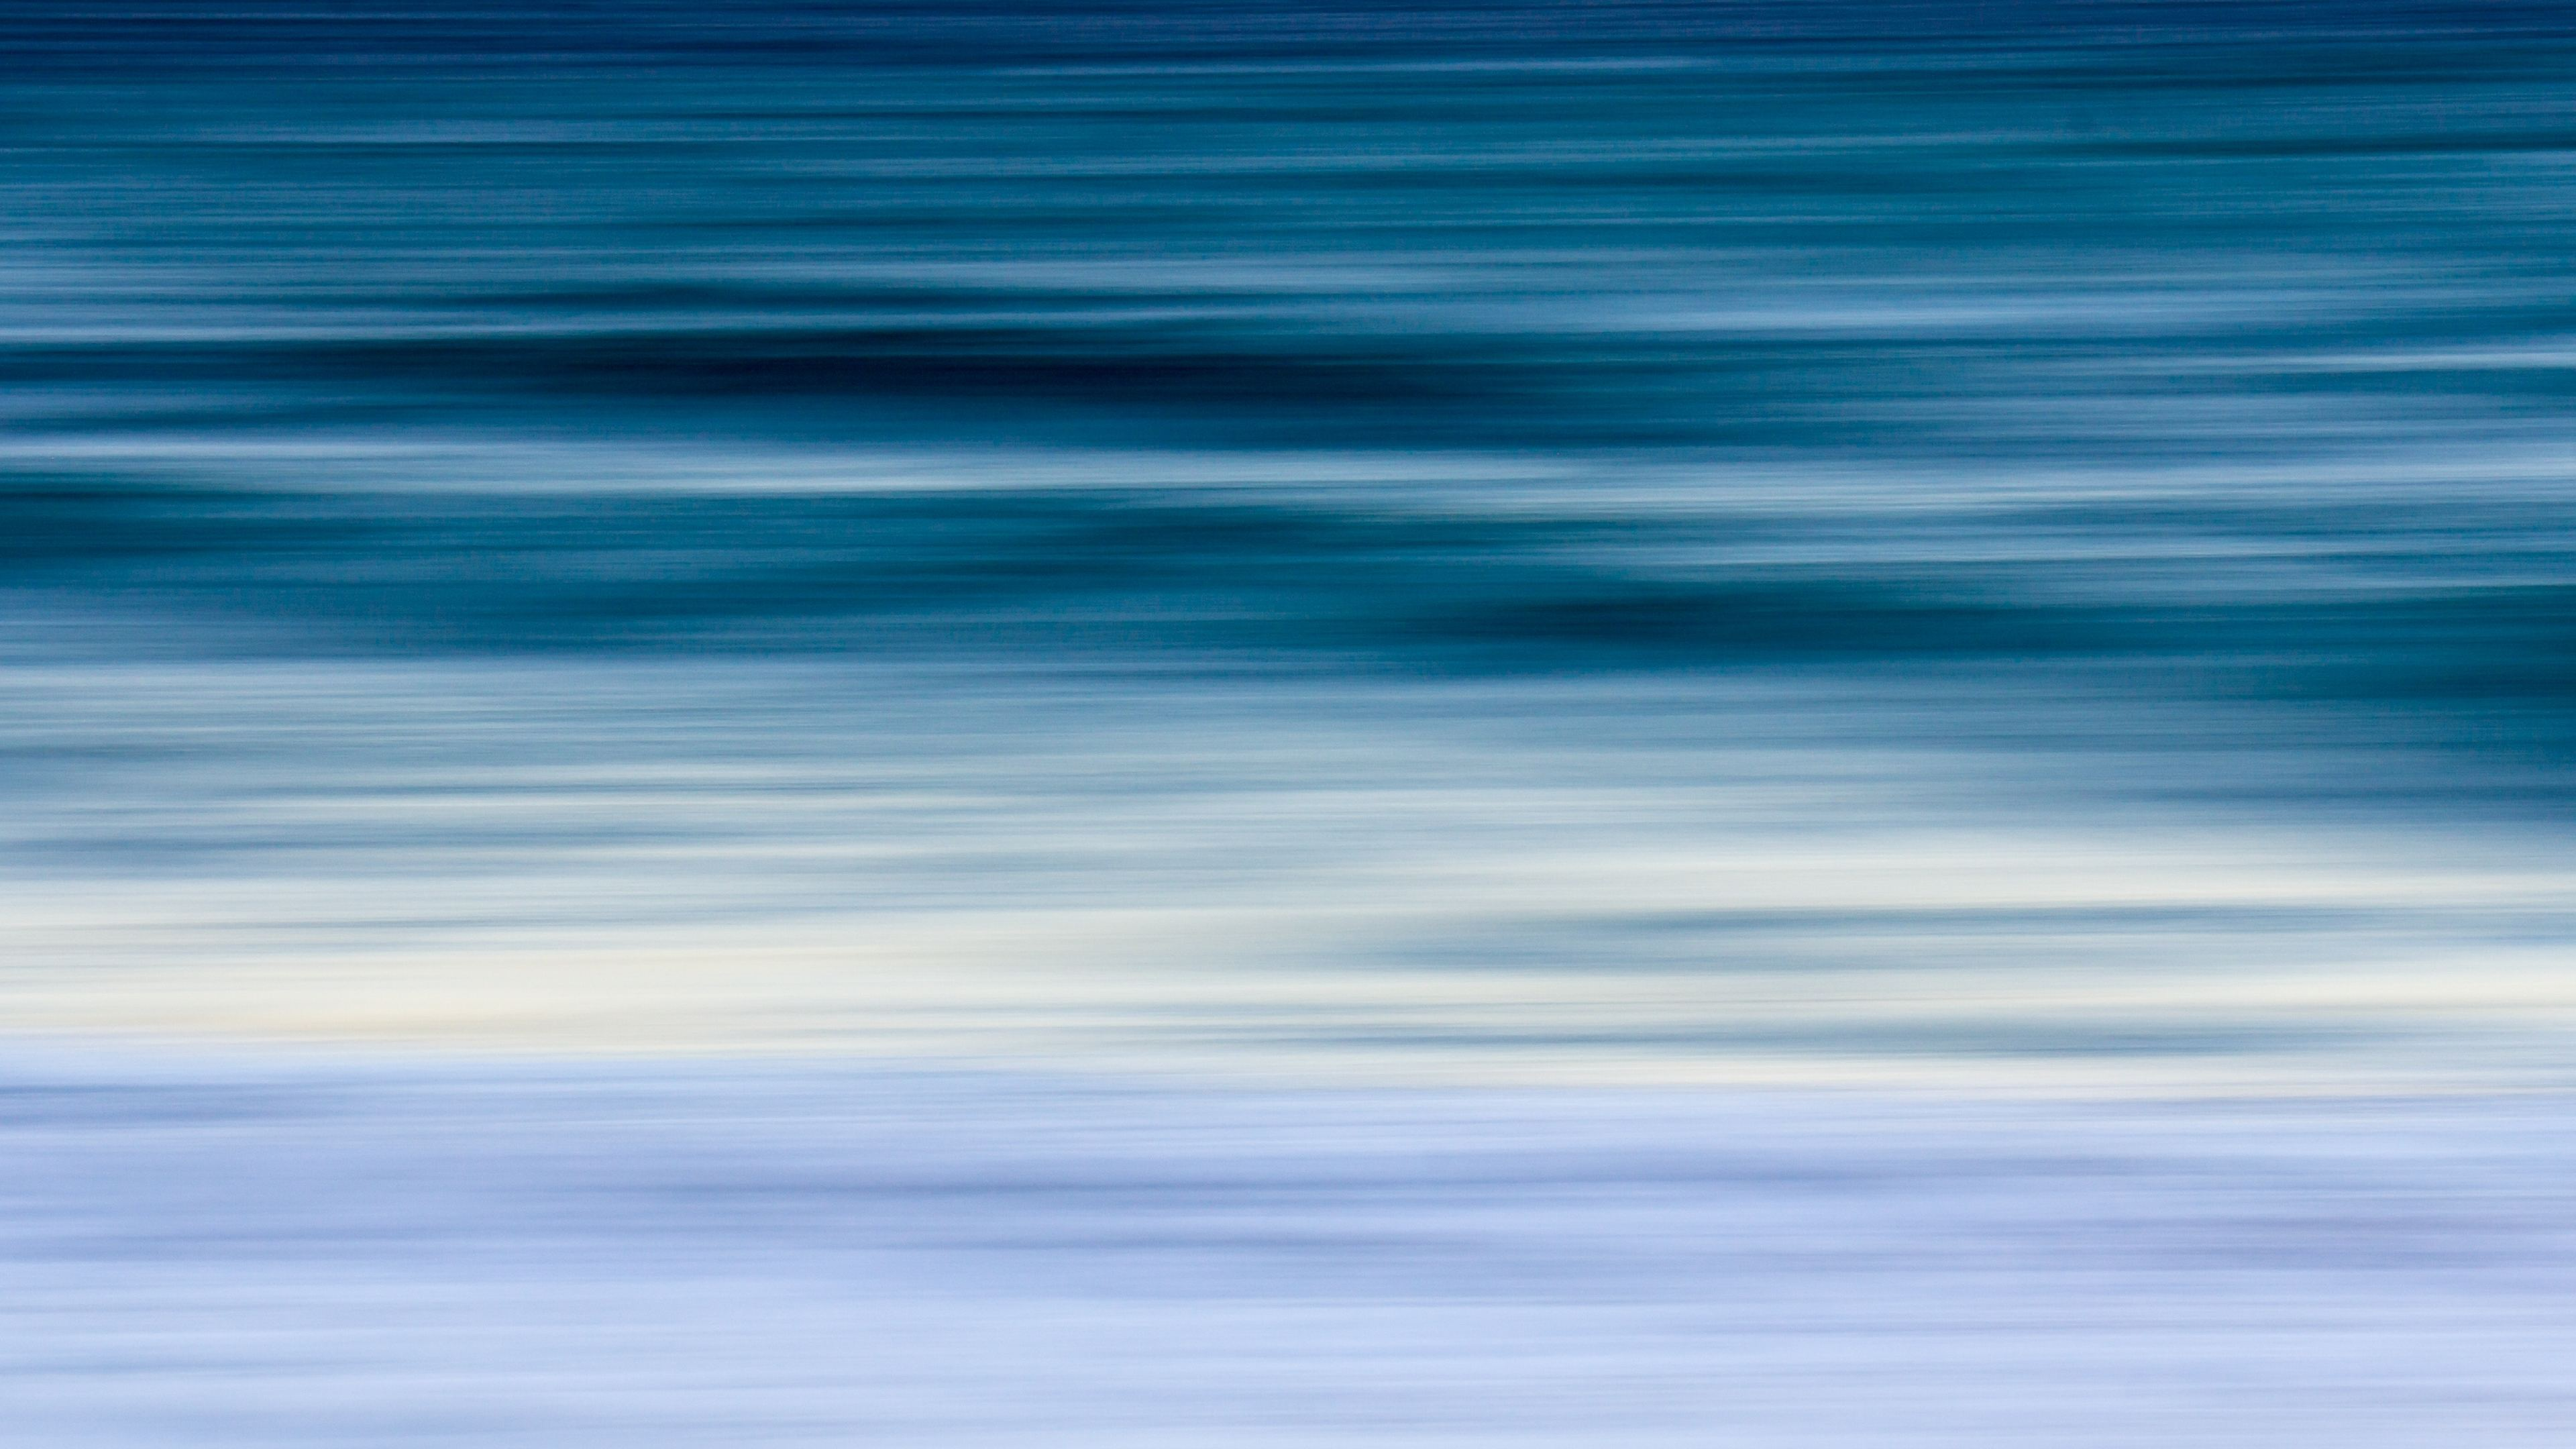 Wallpaper 4k Wave Abstract 4k 4k Wallpapers Abstract